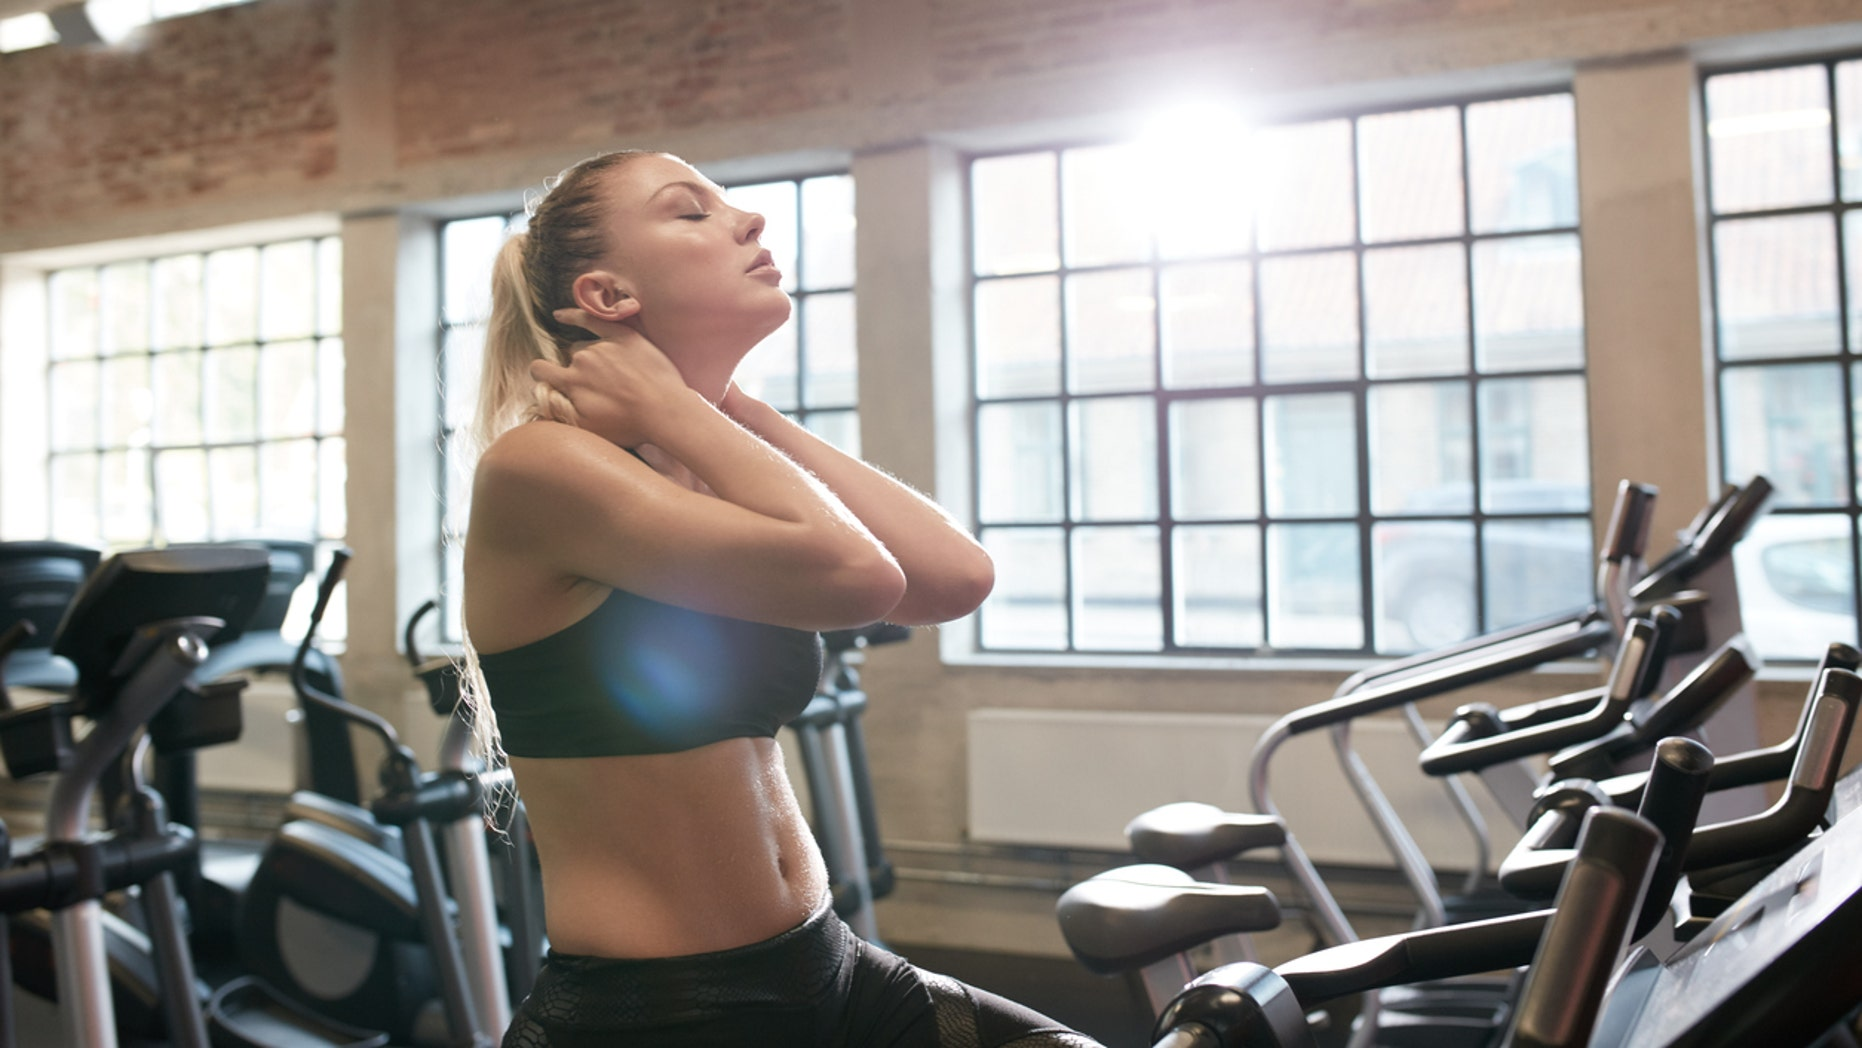 Young woman tired after intense workout on gym bike. Relaxing her neck muscles after workout in fitness club.